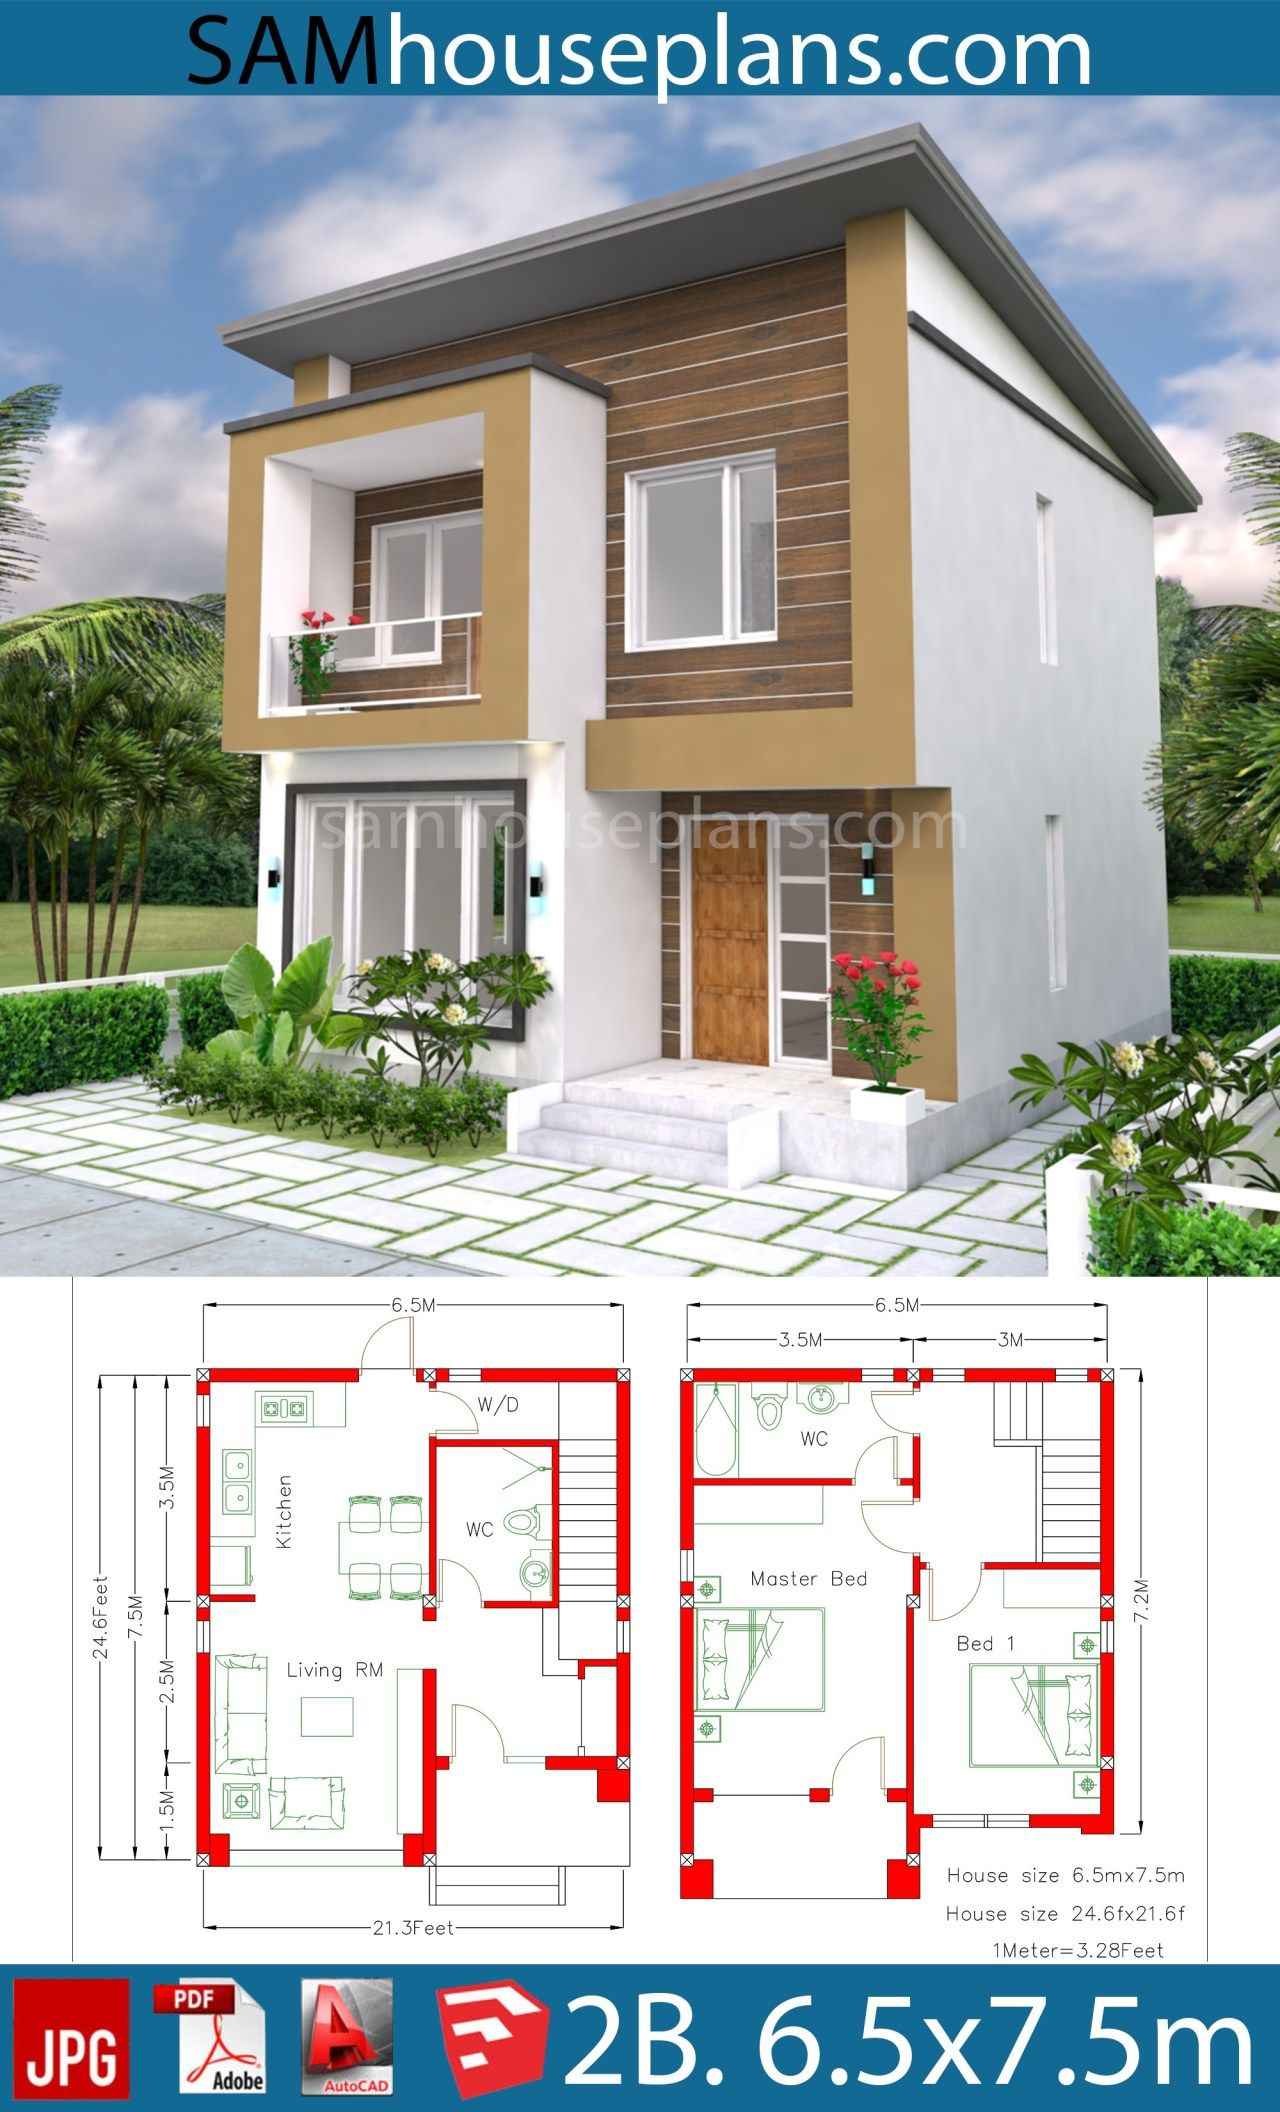 House Plan 6 5x7 5m With 2 Bedrooms A2 Sam House Plans 2 Storey House Design Modern House Design Small House Design